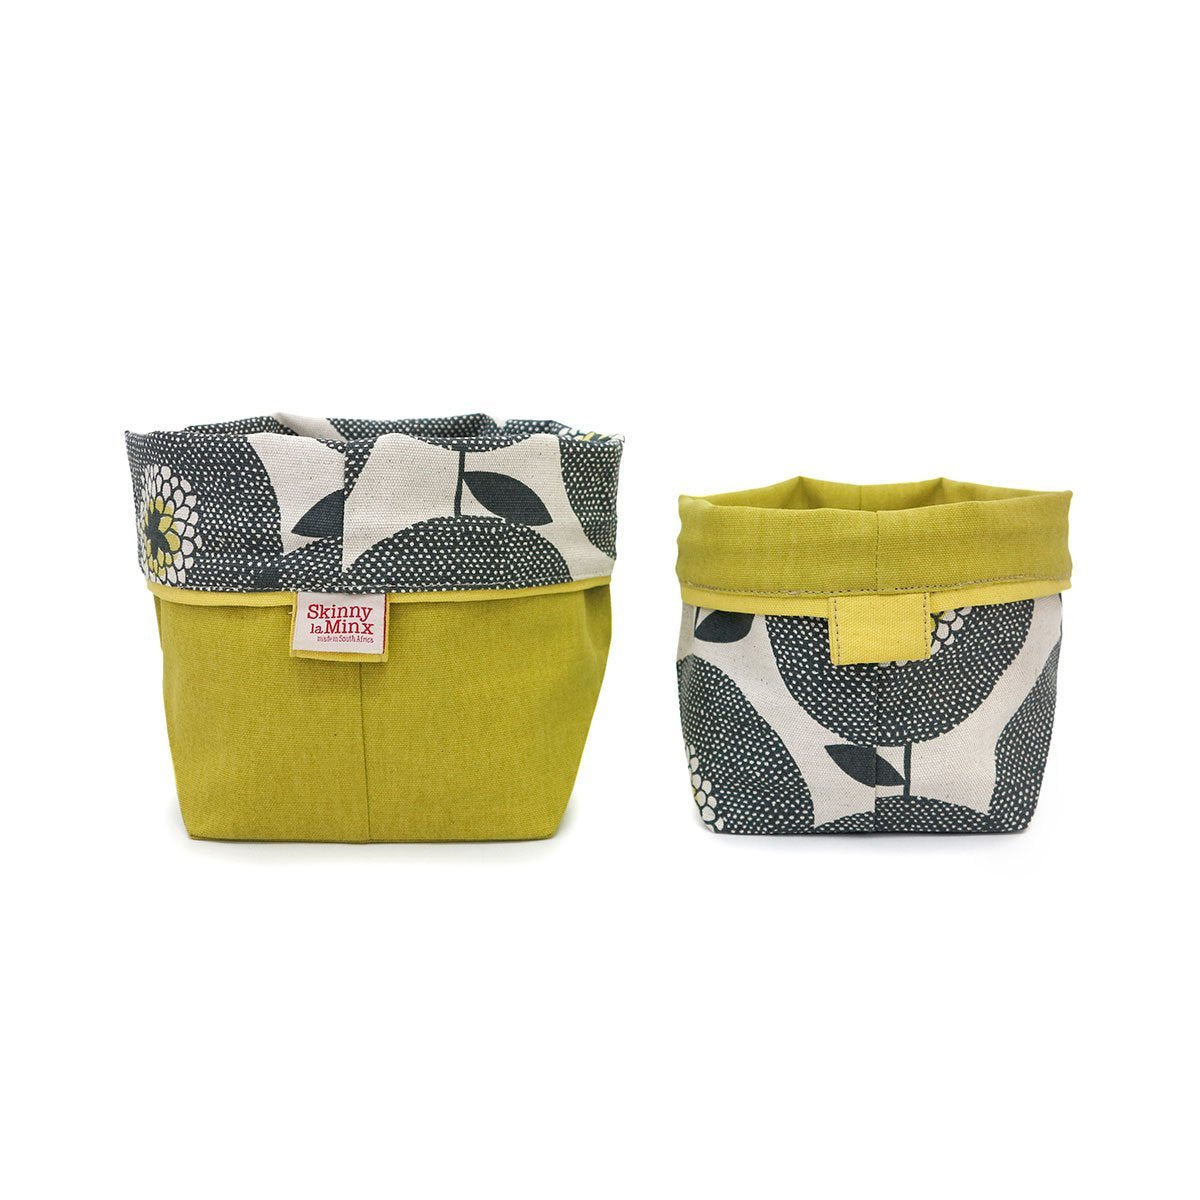 FLOWER FIELDS SOFT BUCKET by Skinny LaMinx at SARZA. containers, fabric, flower fields, holder, homeware, planter, planters, Skinny laMinx, soft bucket, soft buckets, storage